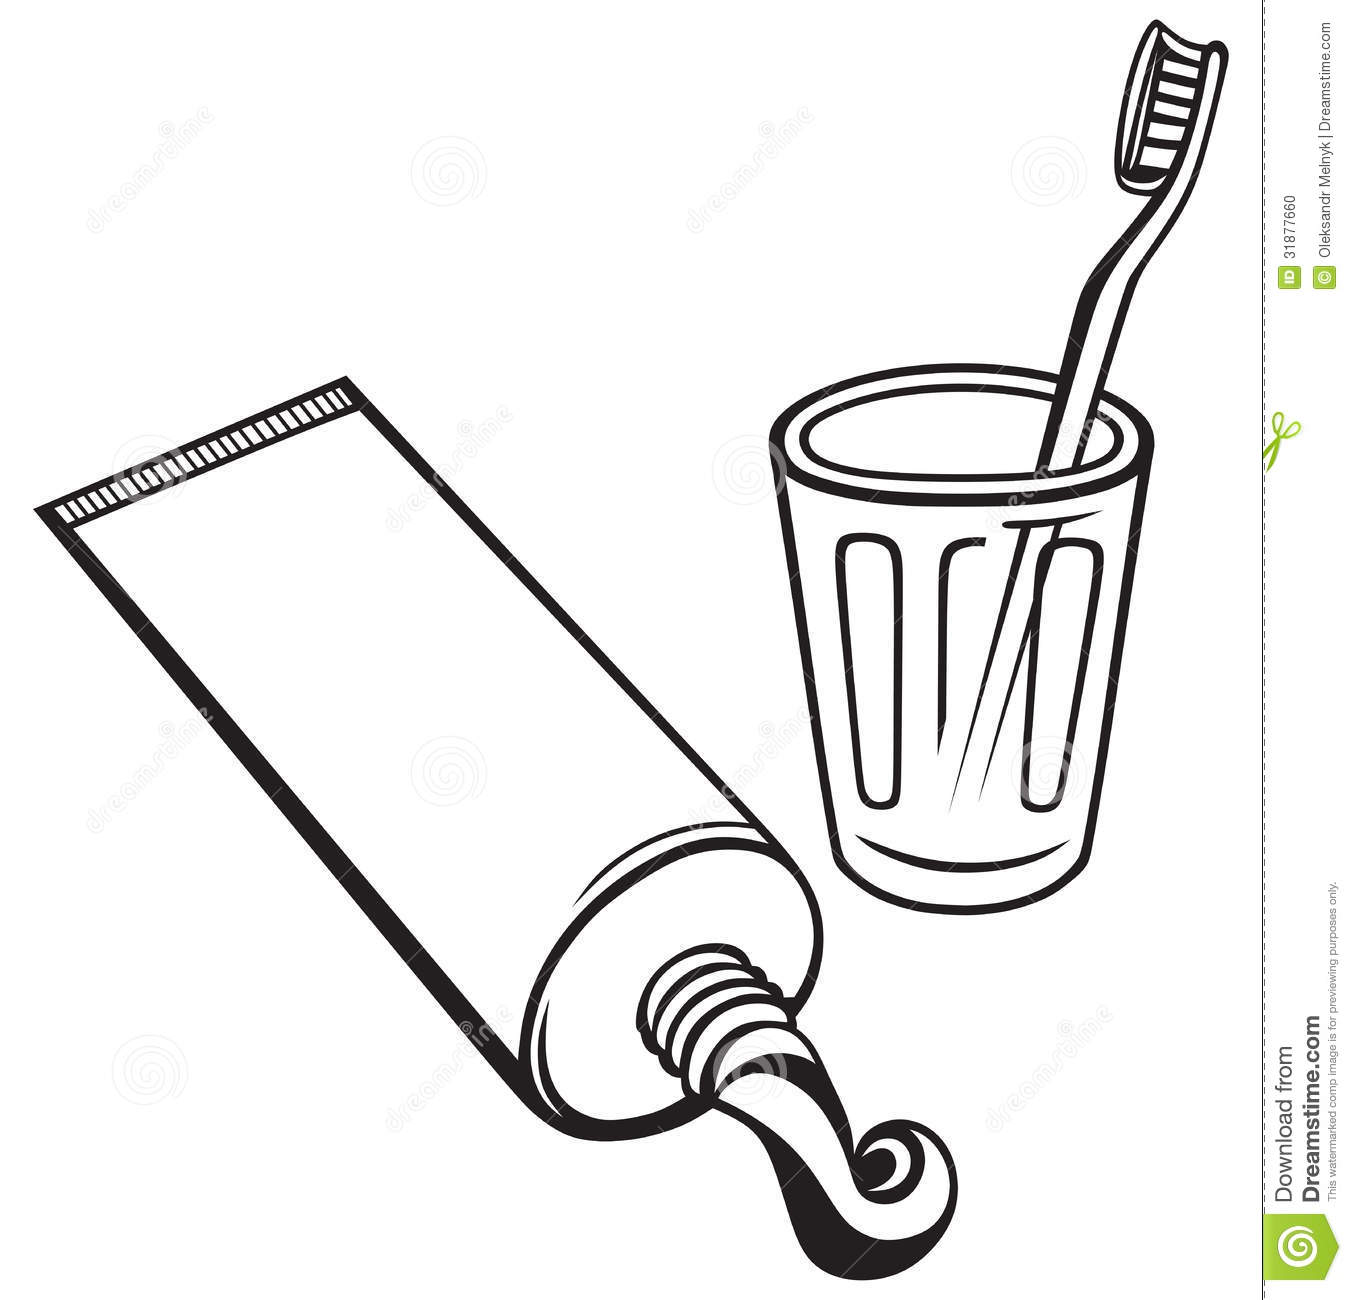 toothbrush clipart black and white - photo #7